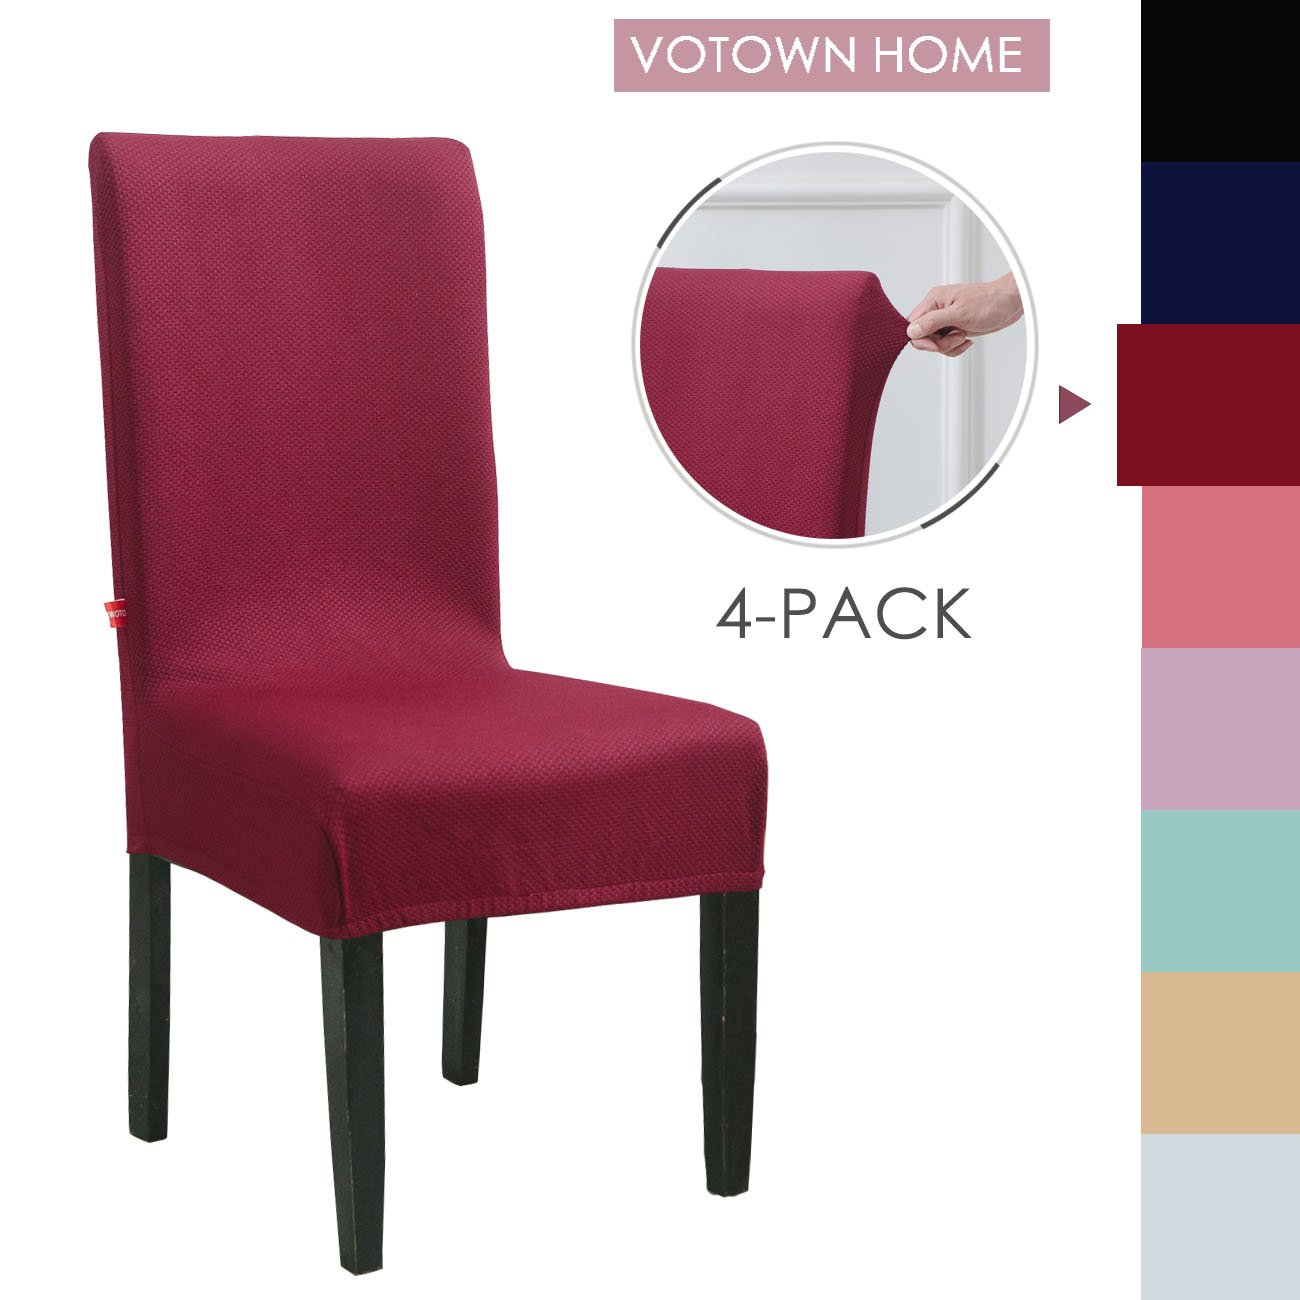 Votown Home Dining Room Chair Slipcovers Spandex Stretch fabric Home Decor Set of 4, Wine Red